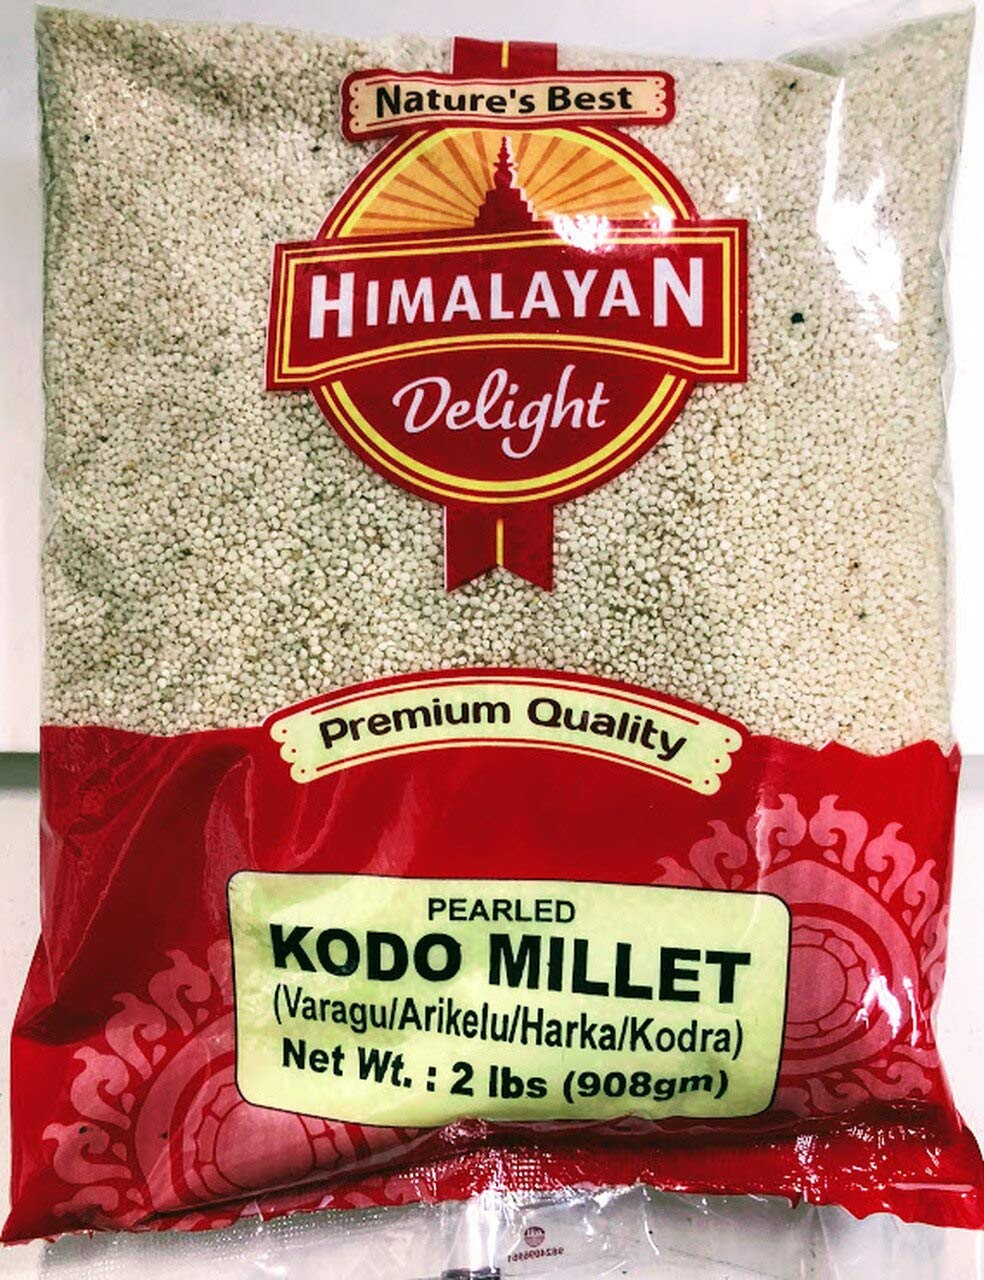 Himalayan Delight Pearled Kodo Millet Max 73% OFF 70% OFF Outlet